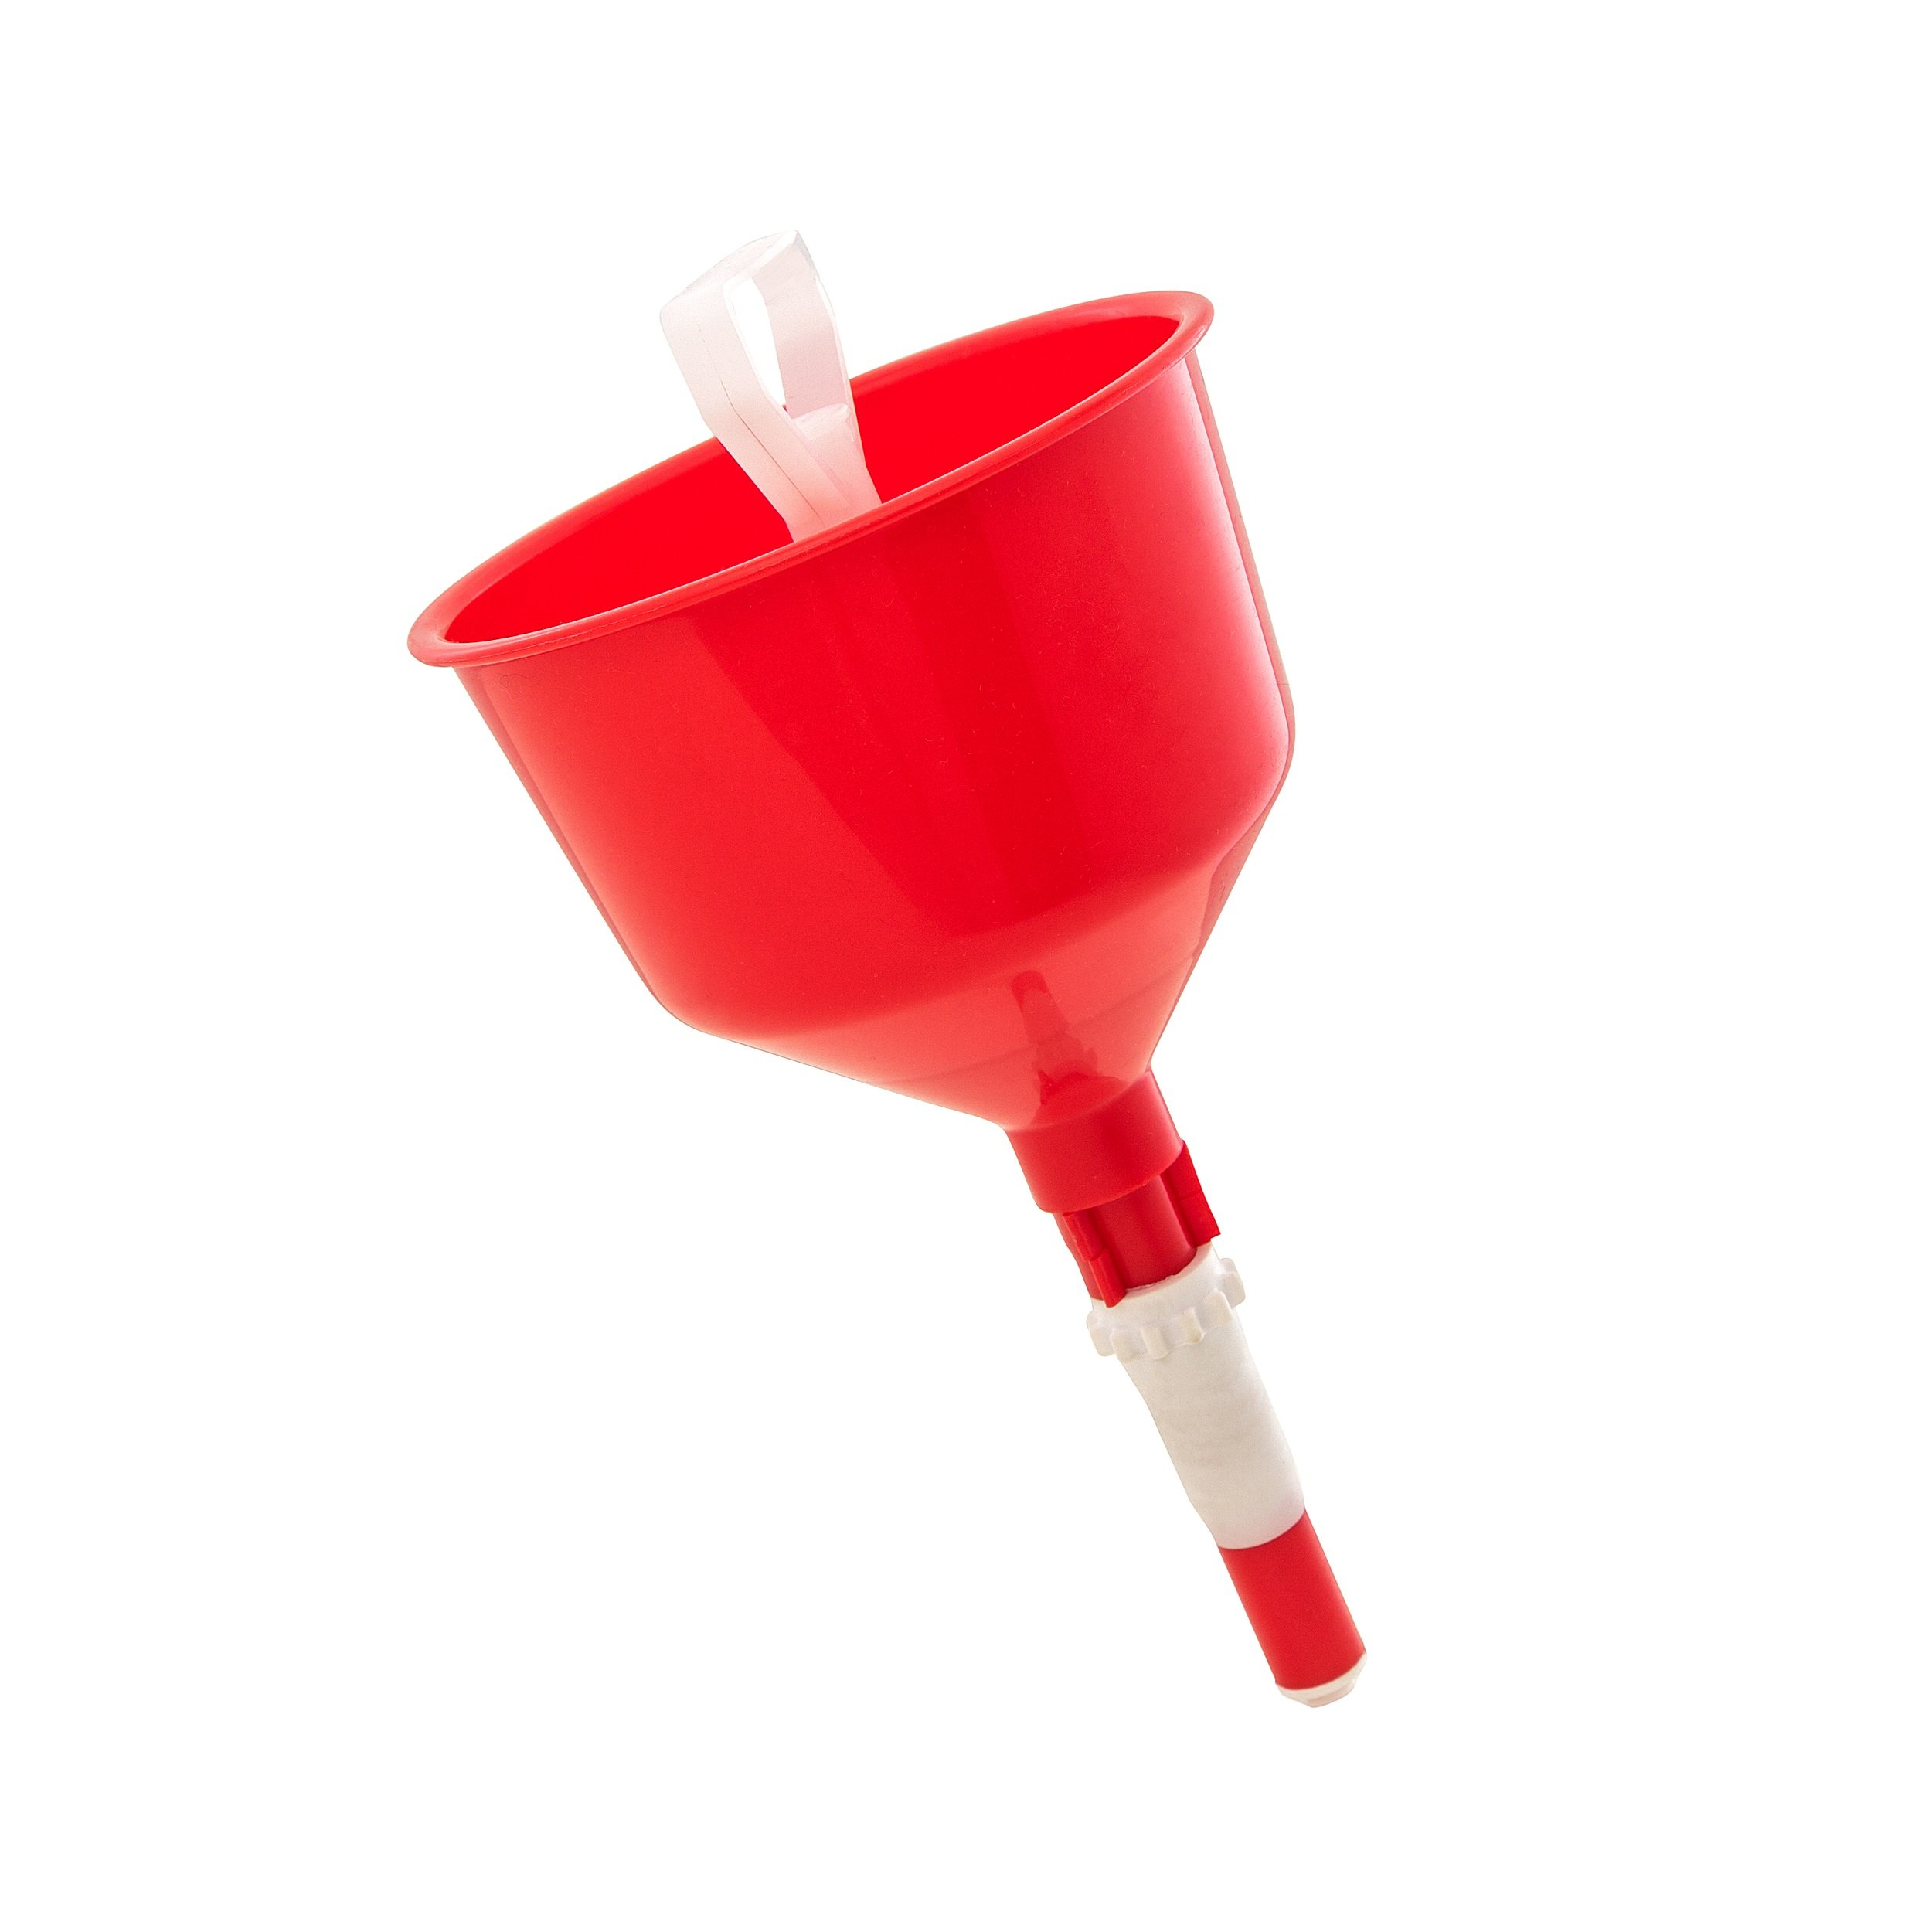 No Spill Funnel (with strainer): Best Grip, Liquid Stopper - 5 inch Plastic Funnel - cup holds up to 750 ml or 25.36 US fl oz